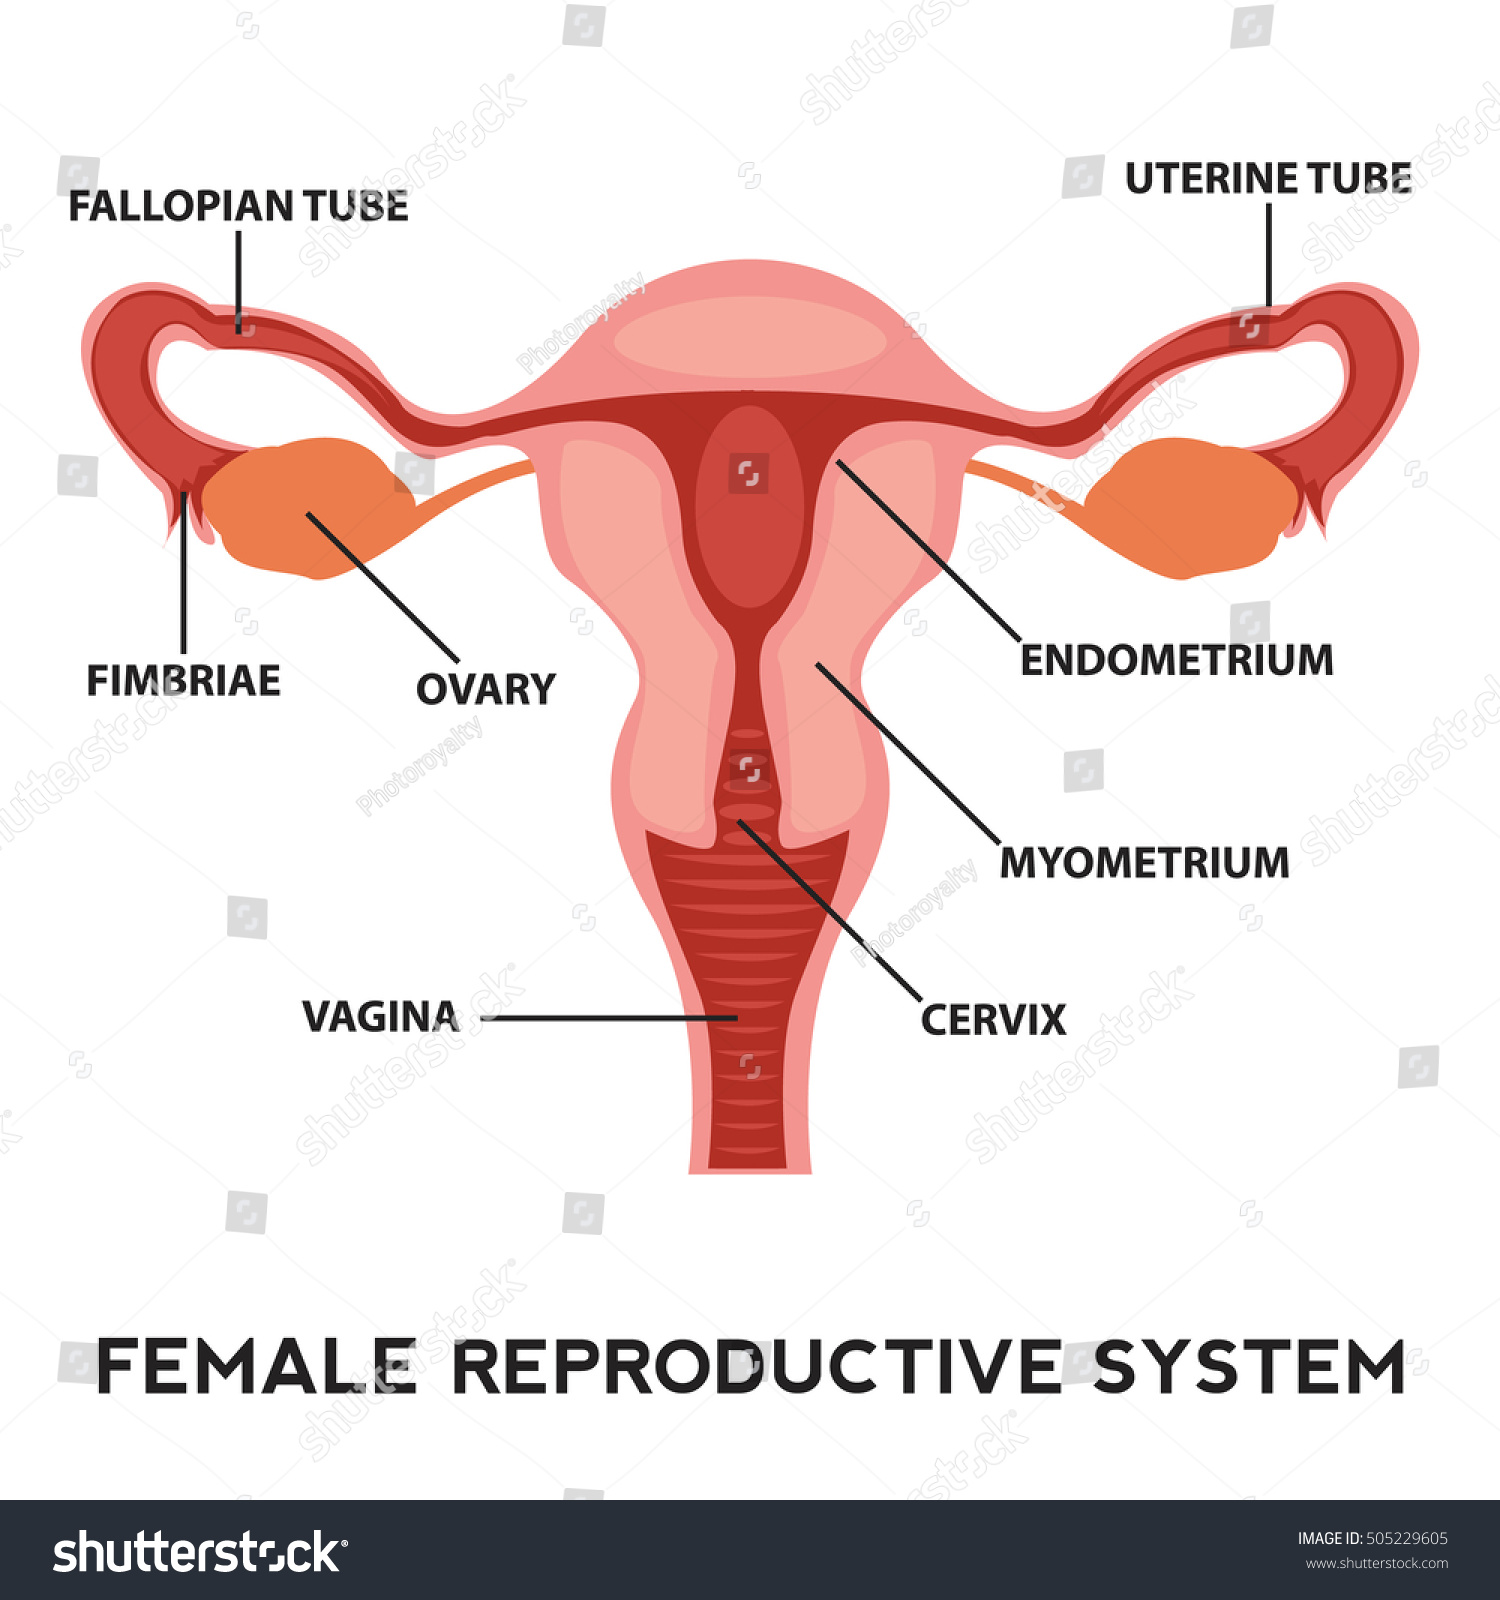 Female Reproductive System Image Diagram Vagina Stock-Vektorgrafik ...